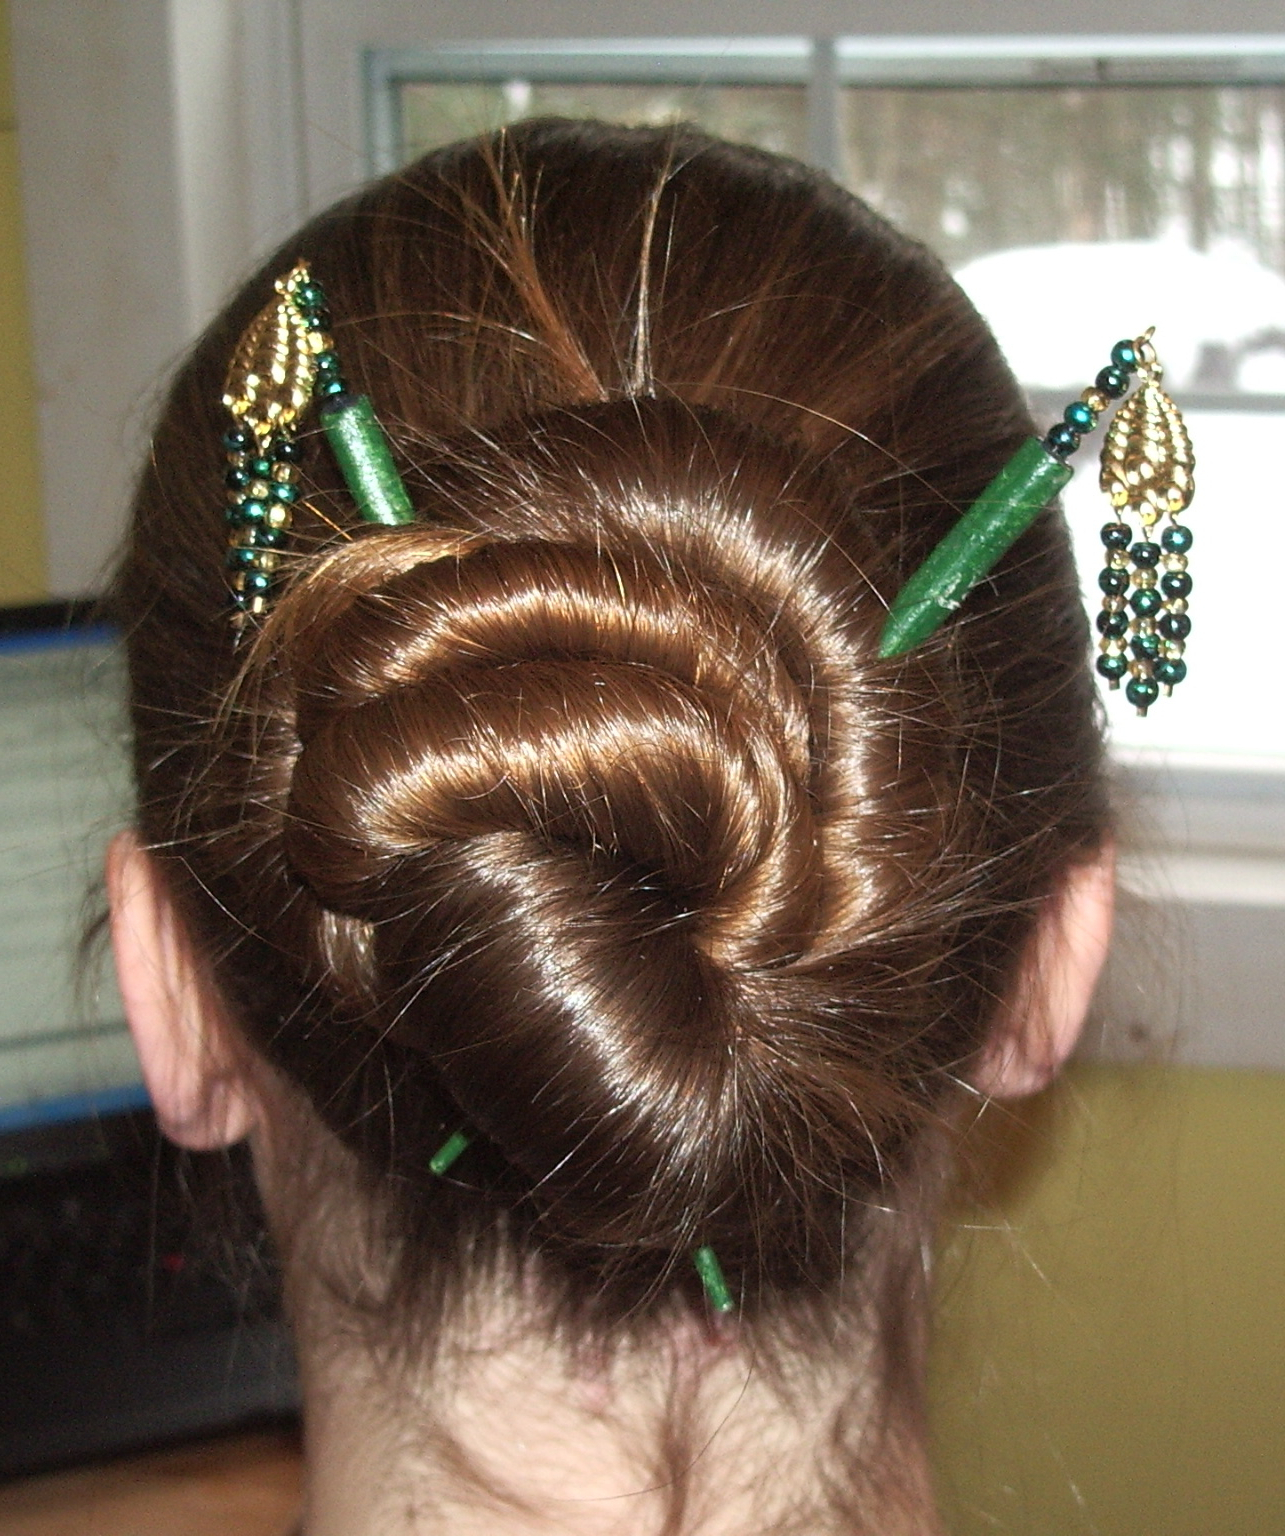 Hairstyles For Hair Sticks: 9 Steps (with Pictures) Inside Widely Used Cinnamon Bun Braided Hairstyles (View 14 of 20)